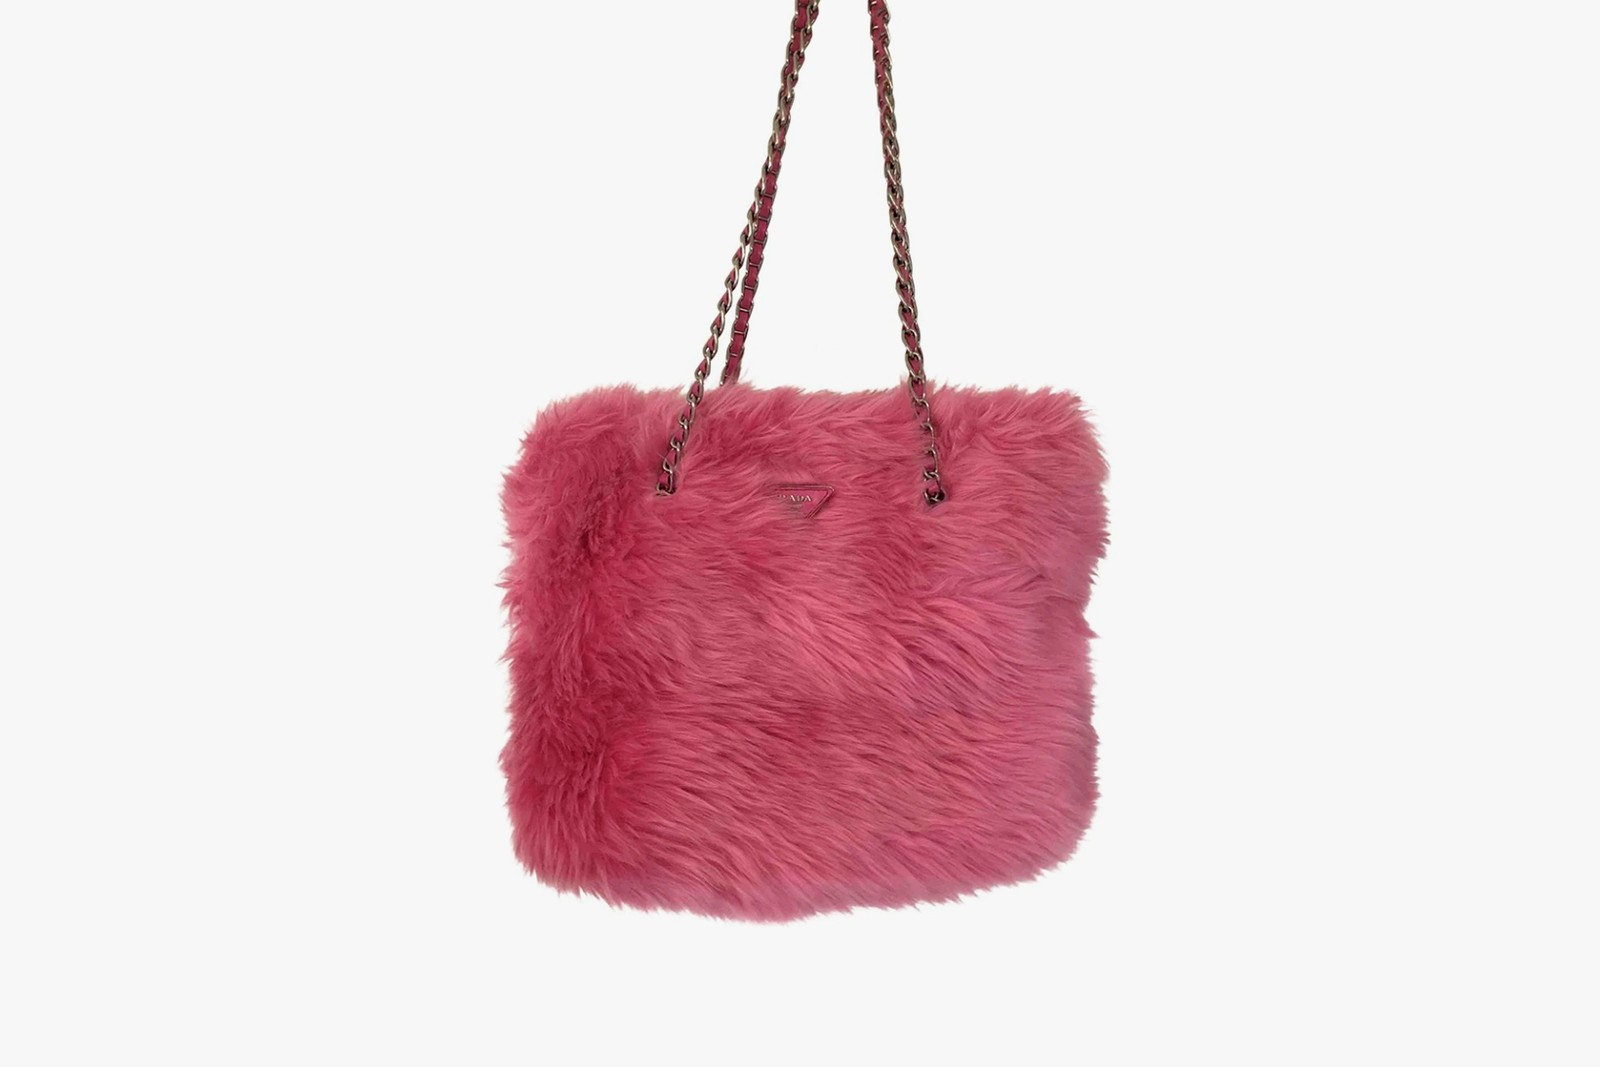 best faux fur shearling designer bags holiday christmas new years balenciaga prada black pink